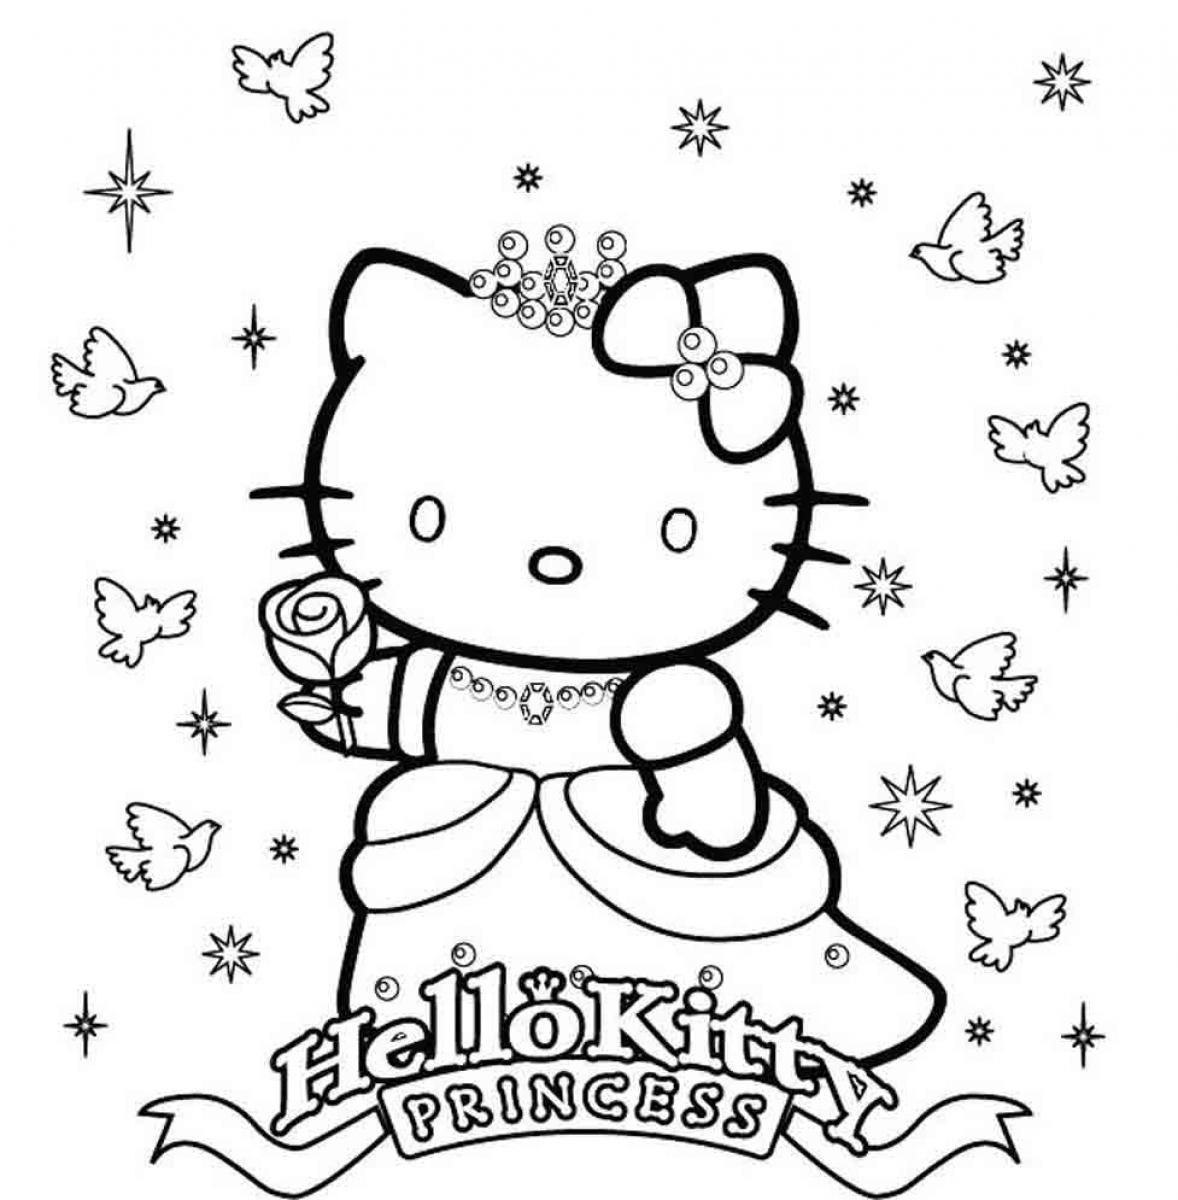 Hellokittycoloringpage Com Princess Hello Kitty Coloring Pages Hello Kitty Colouring Pages Hello Kitty Coloring Hello Kitty Drawing